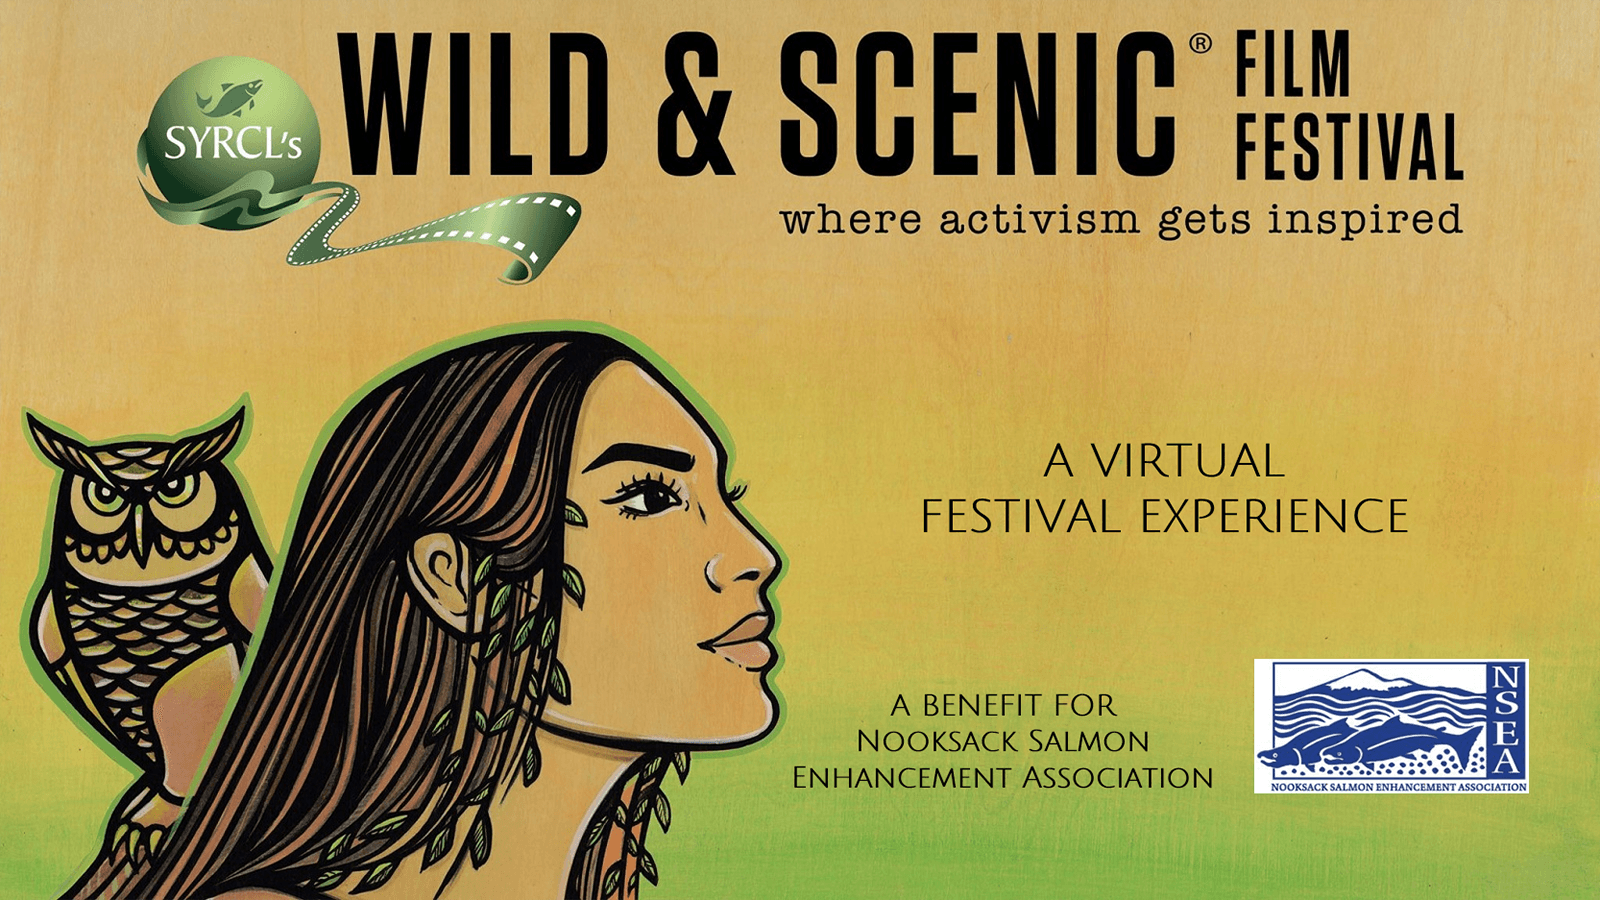 NSEA Presents SYRCL's Wild & Scenic Film Festival On Tour - Chehalis: A Watershed Moment